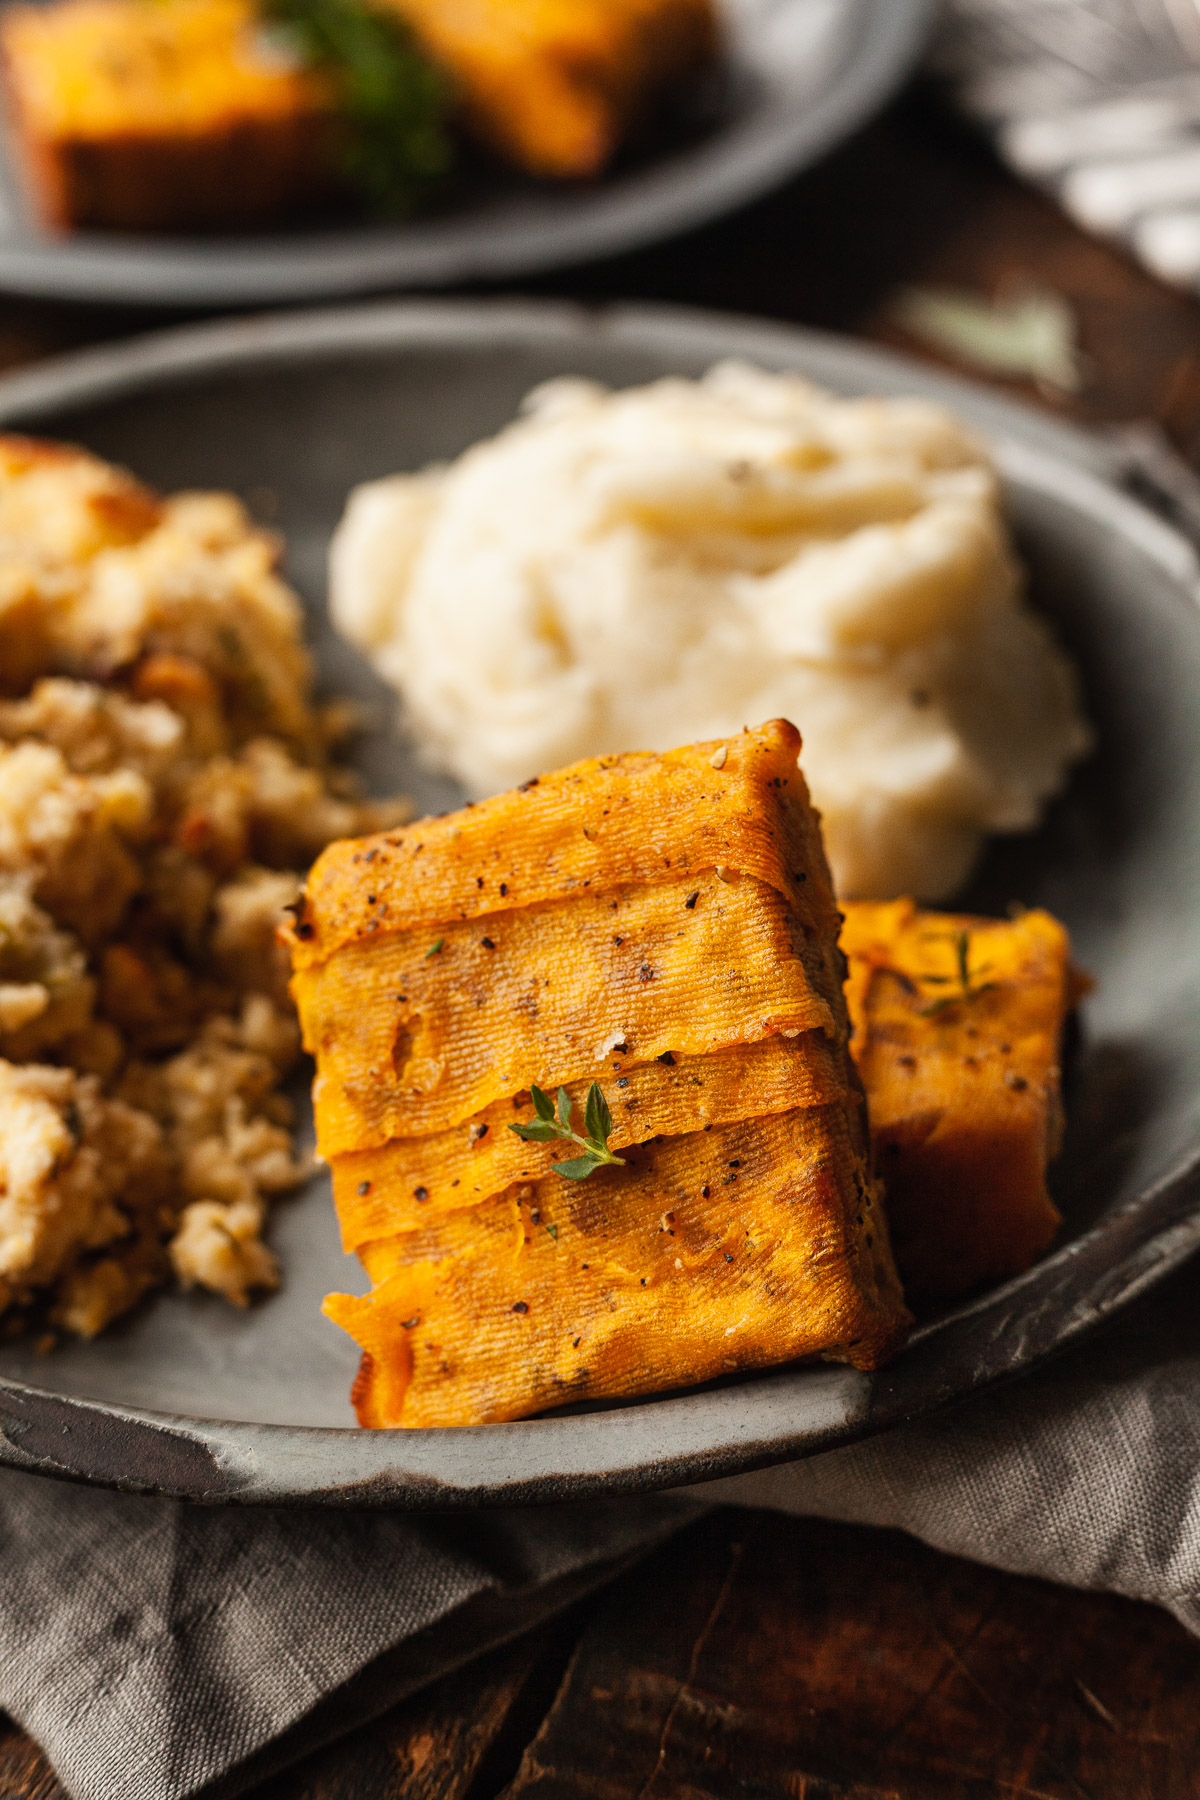 butternut squash wrapped tempeh on a plate with mashed potatoes and stuffing